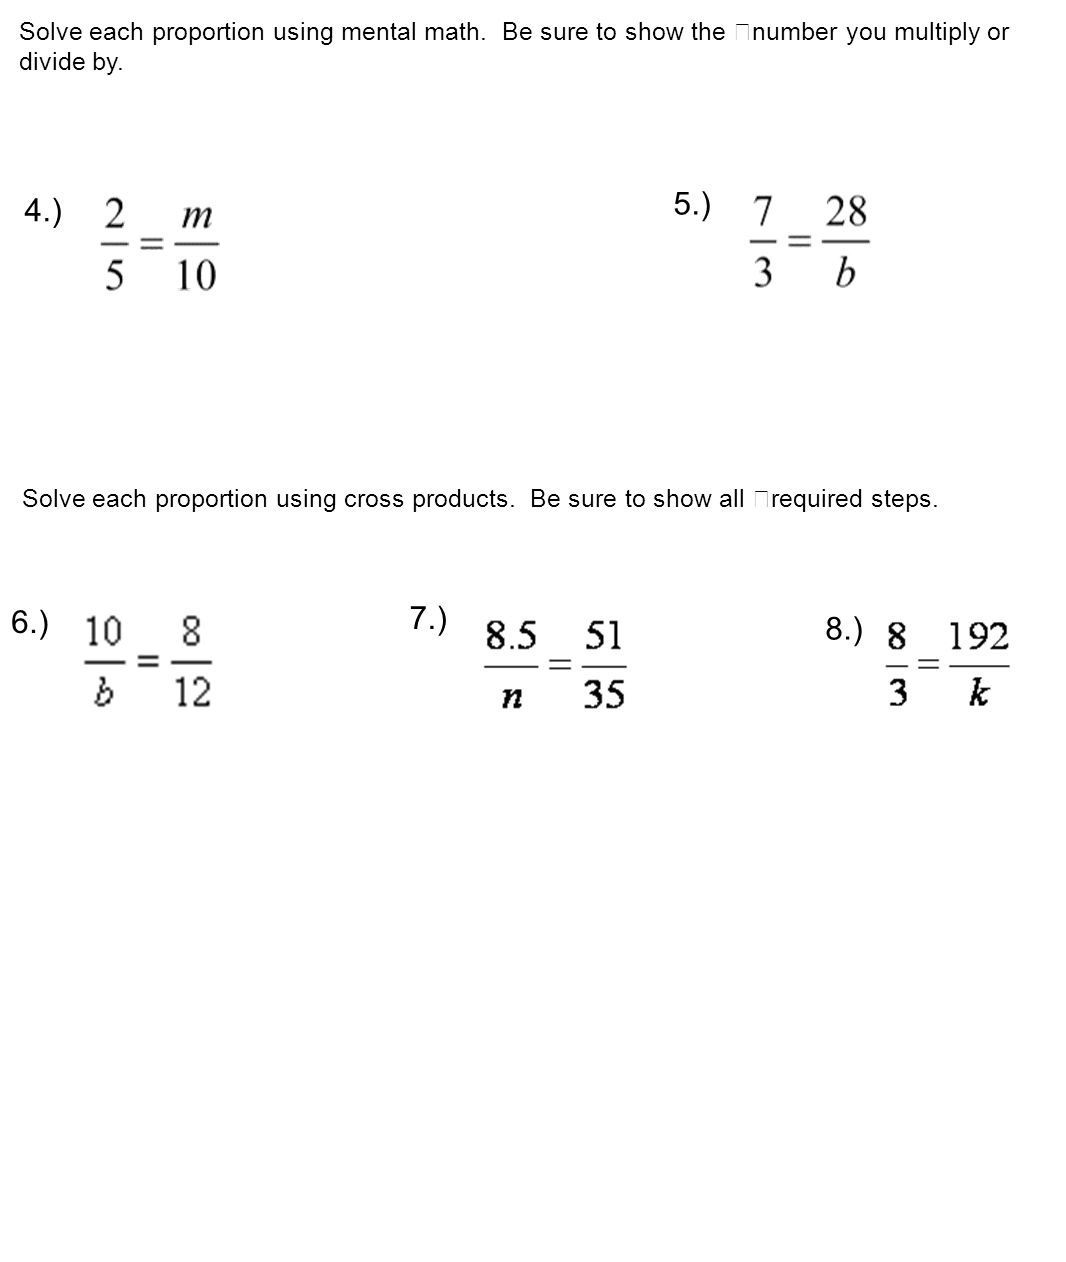 Solving Proportions Calculators Permitted But Show All Work